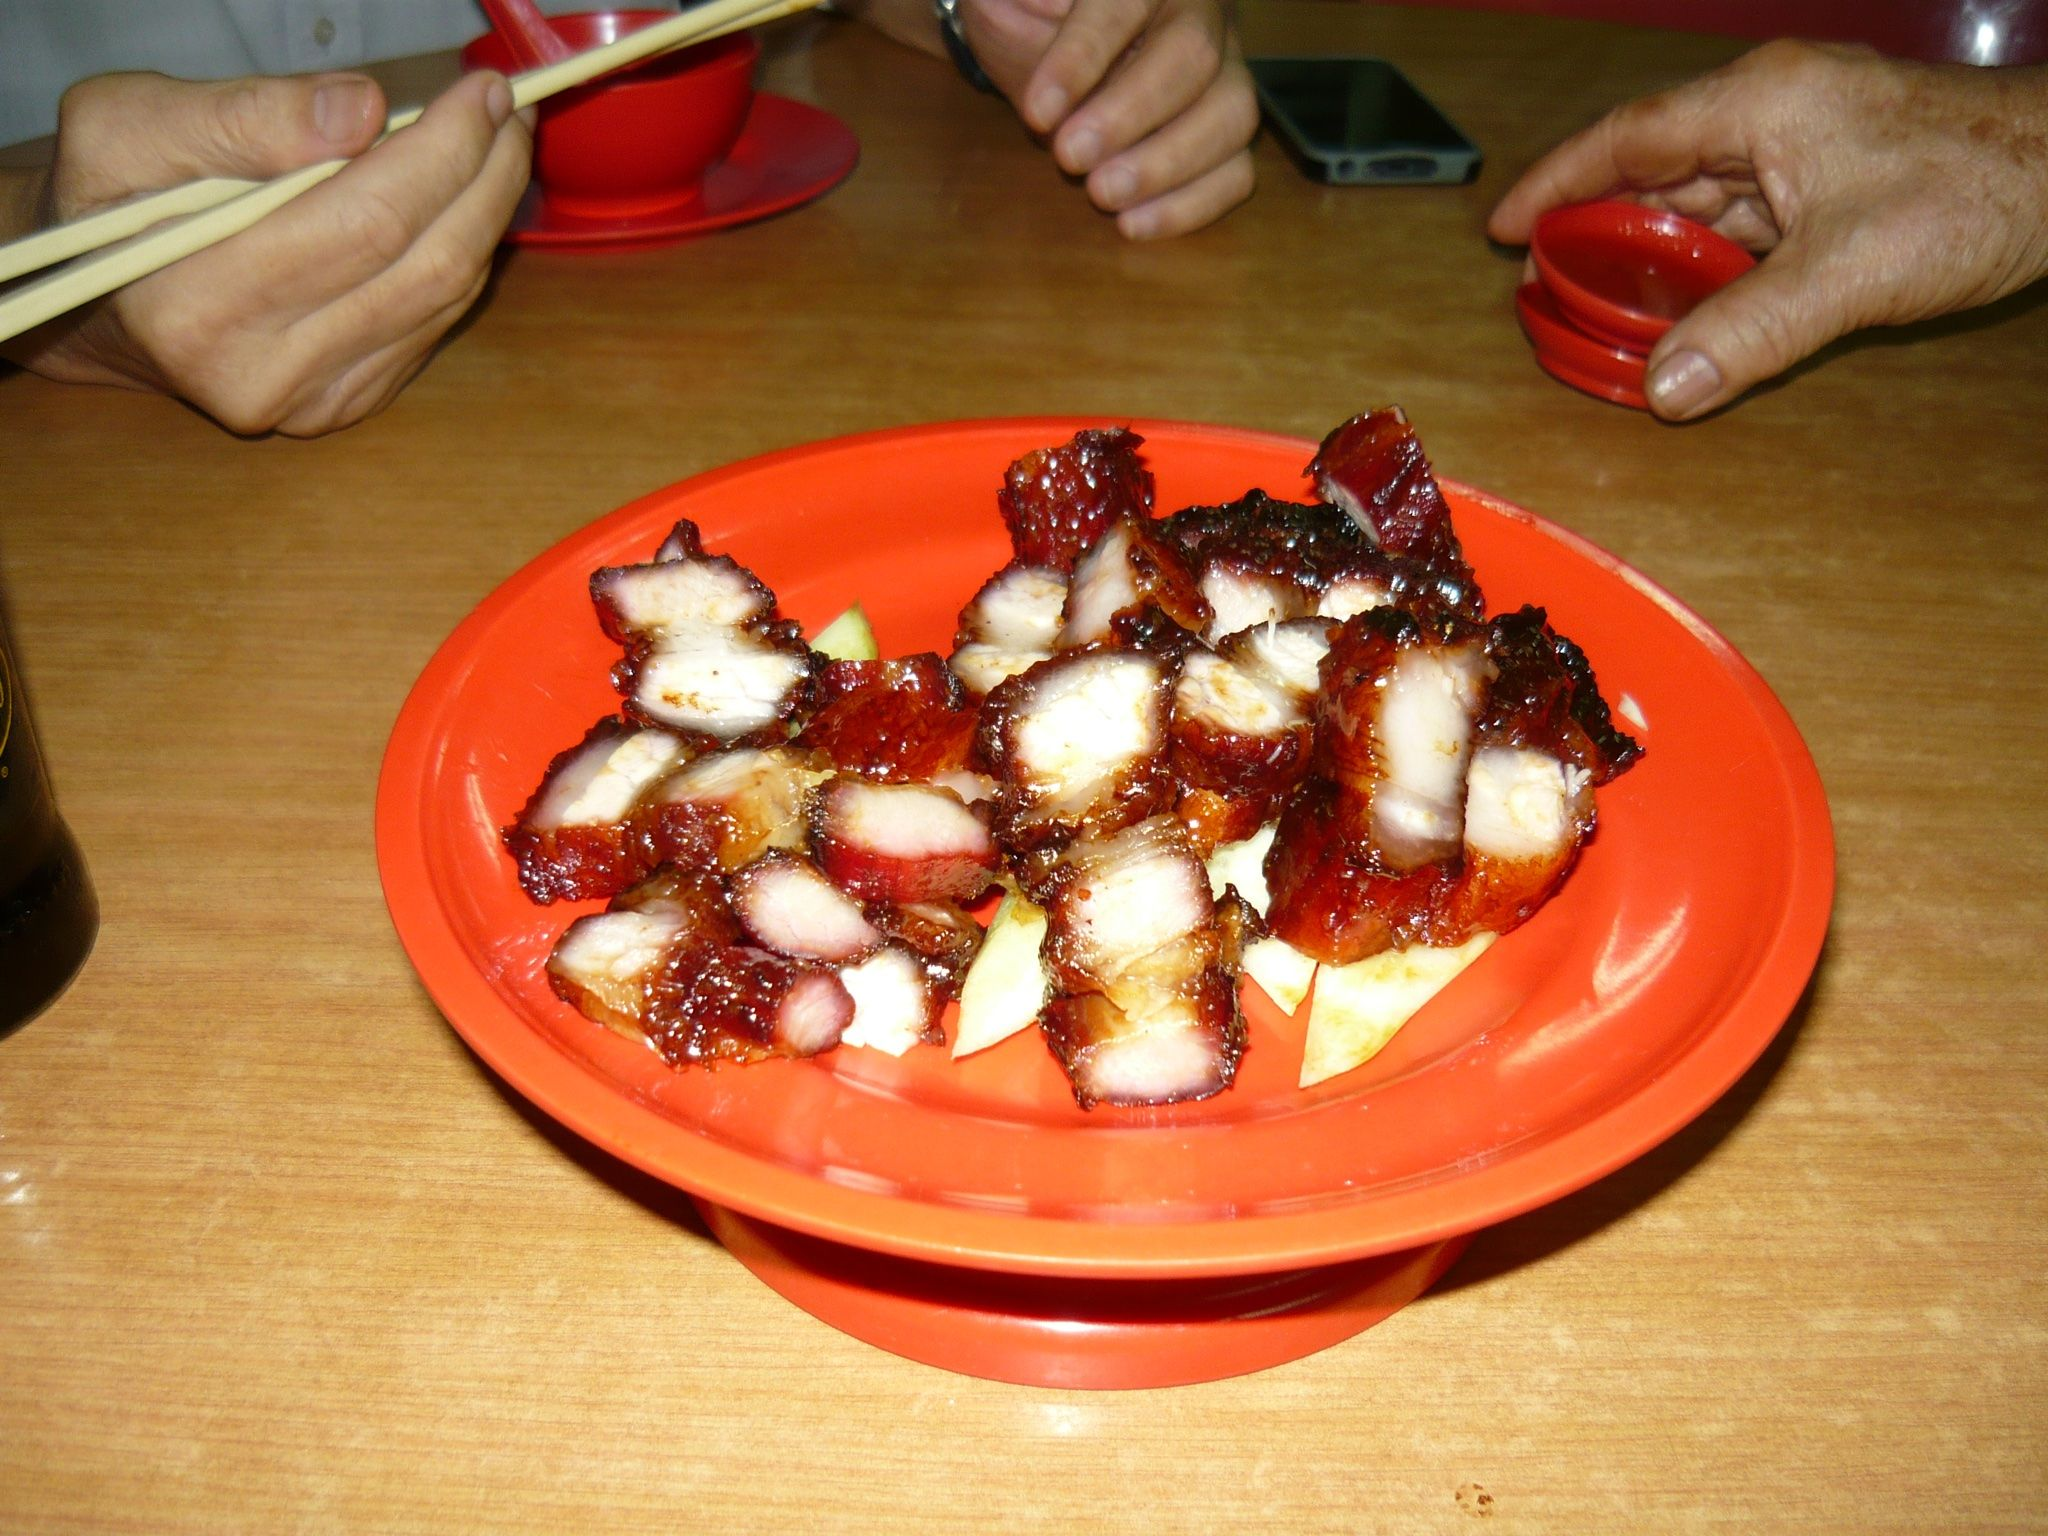 Soo Kee at Jalan Ampang near the Ampang Jaya end before the MRII. This is their famous char siew.